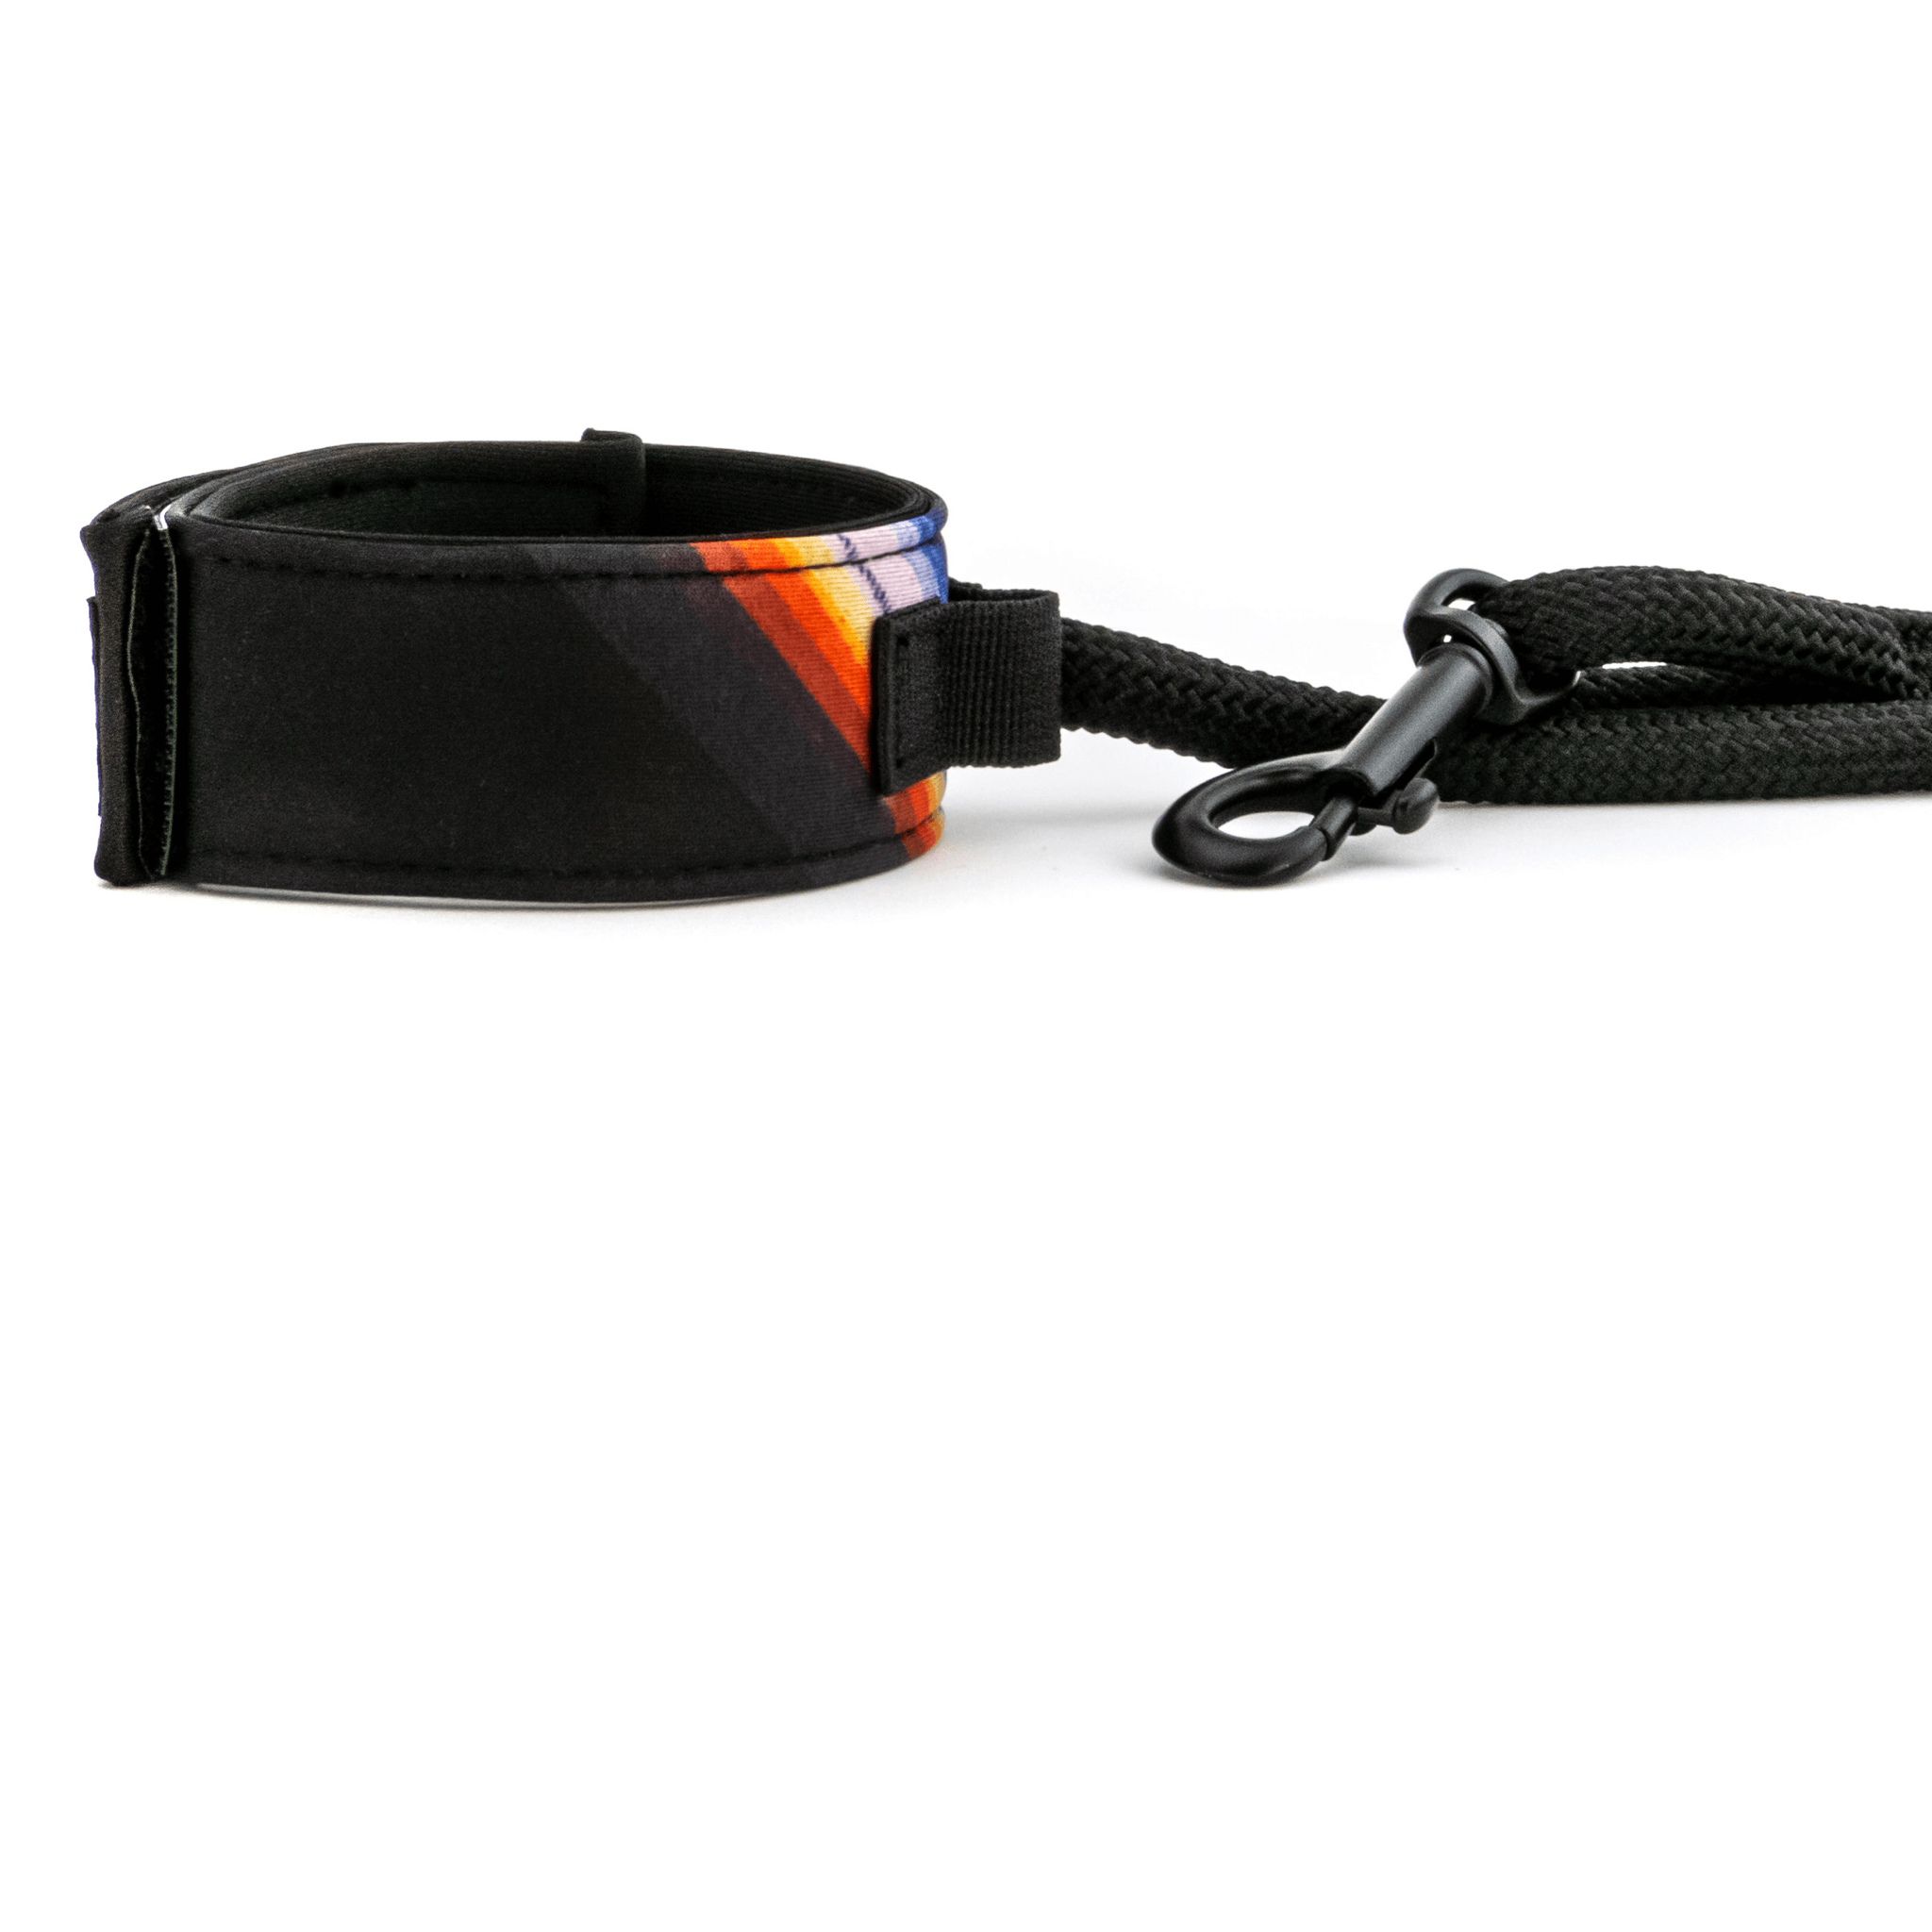 Bingin Dog 'Back in Black' surf-style rope dog leash handle shown from side. Solid black print with one blue, orange & white serape stripe.